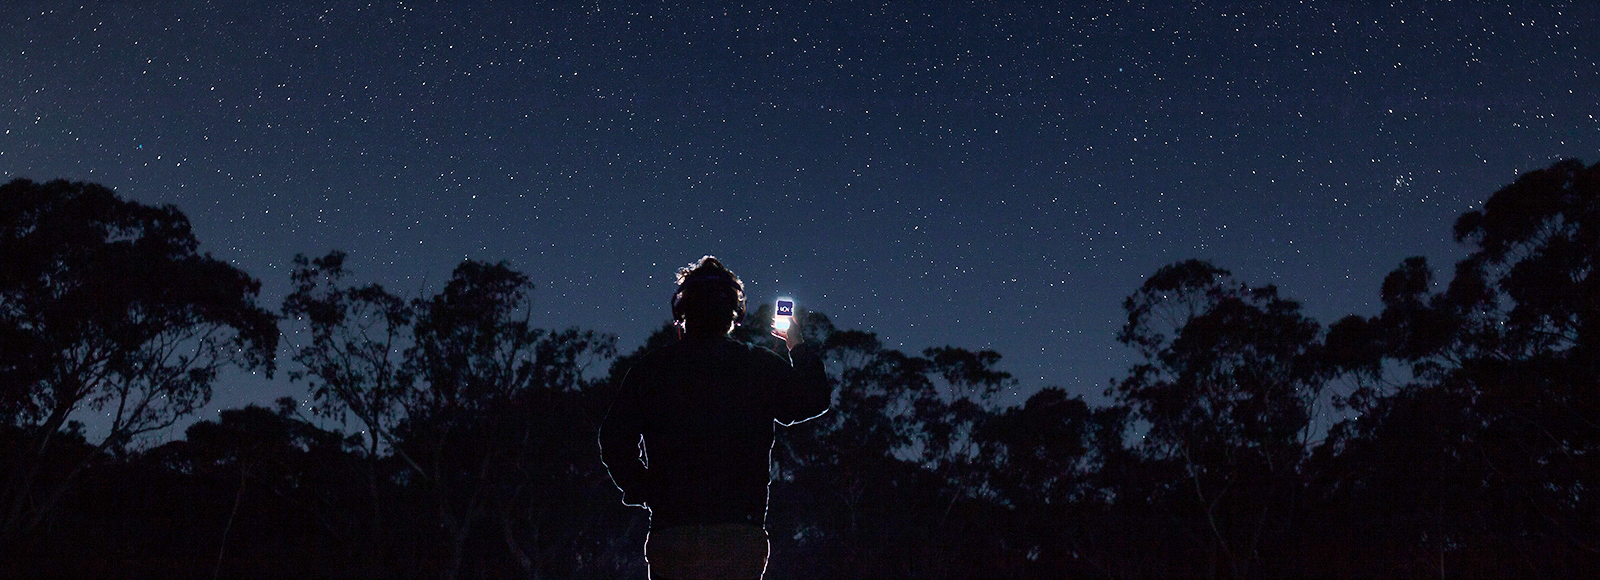 Michaela Gleave, A Galaxy of Suns, smartphone app. Photo: silversalt. Courtesy: the artist and Anna Pappas Gallery, Melbourne